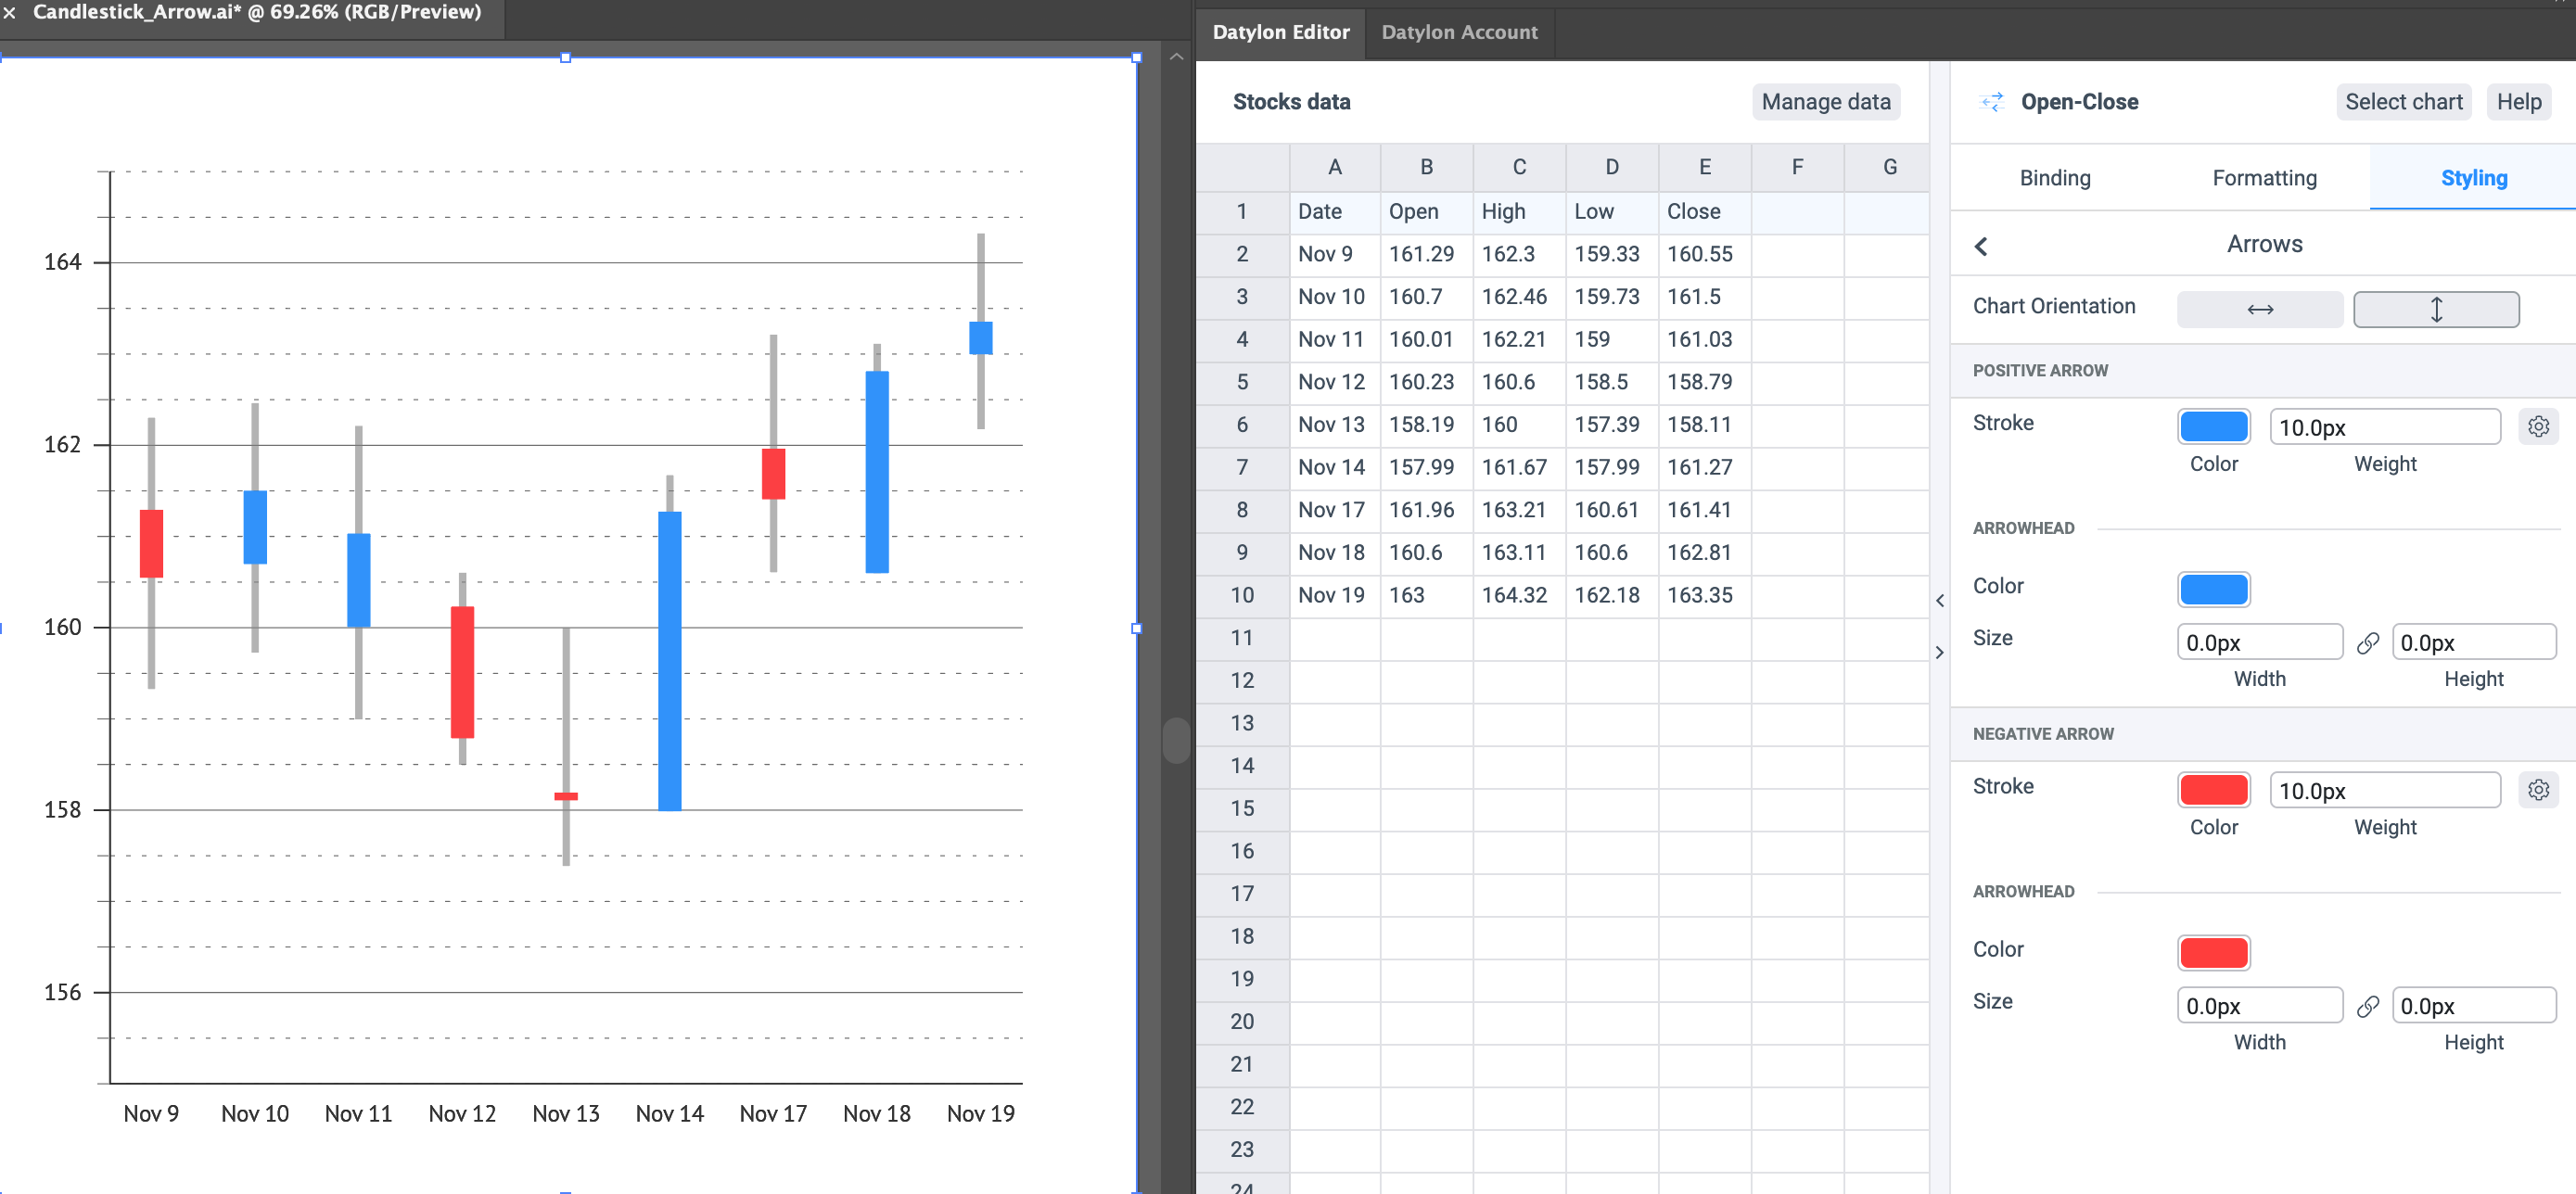 helpcenter-how-to-create-a-candlestick-chart-with-datylon-Step 10